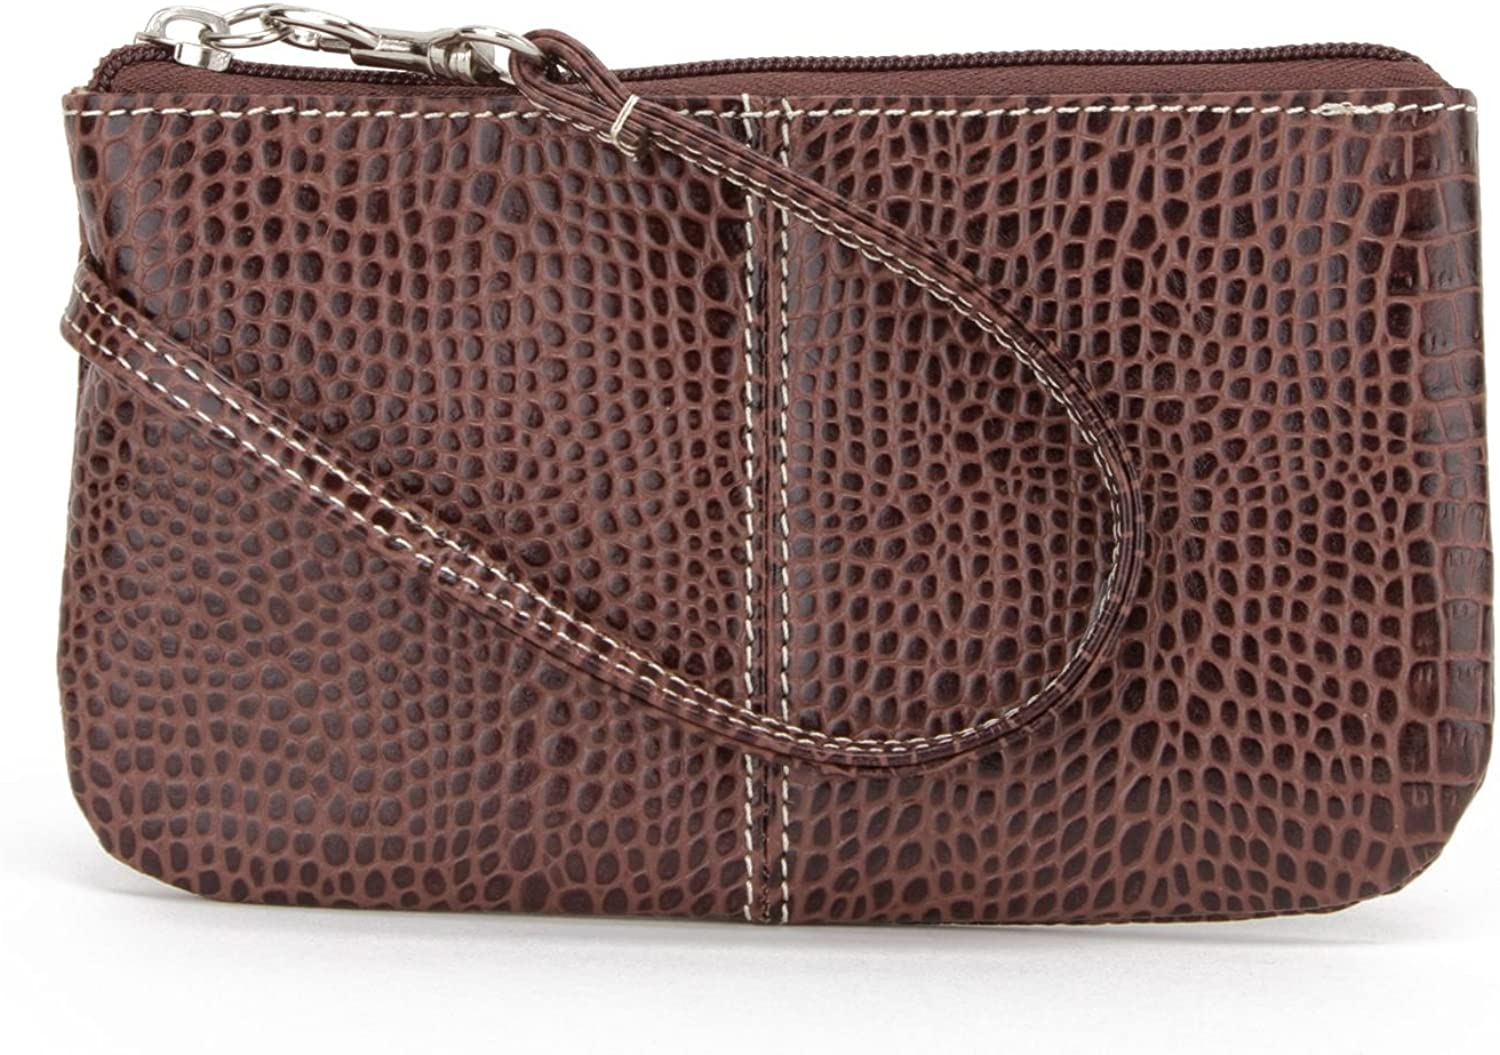 Soprano Handbags Daisy Croc Embossed Leather Wristlet Brown Amazon Ca Shoes Handbags I live alone with alan who is a monster my dad не пользуетесь твиттером? amazon ca